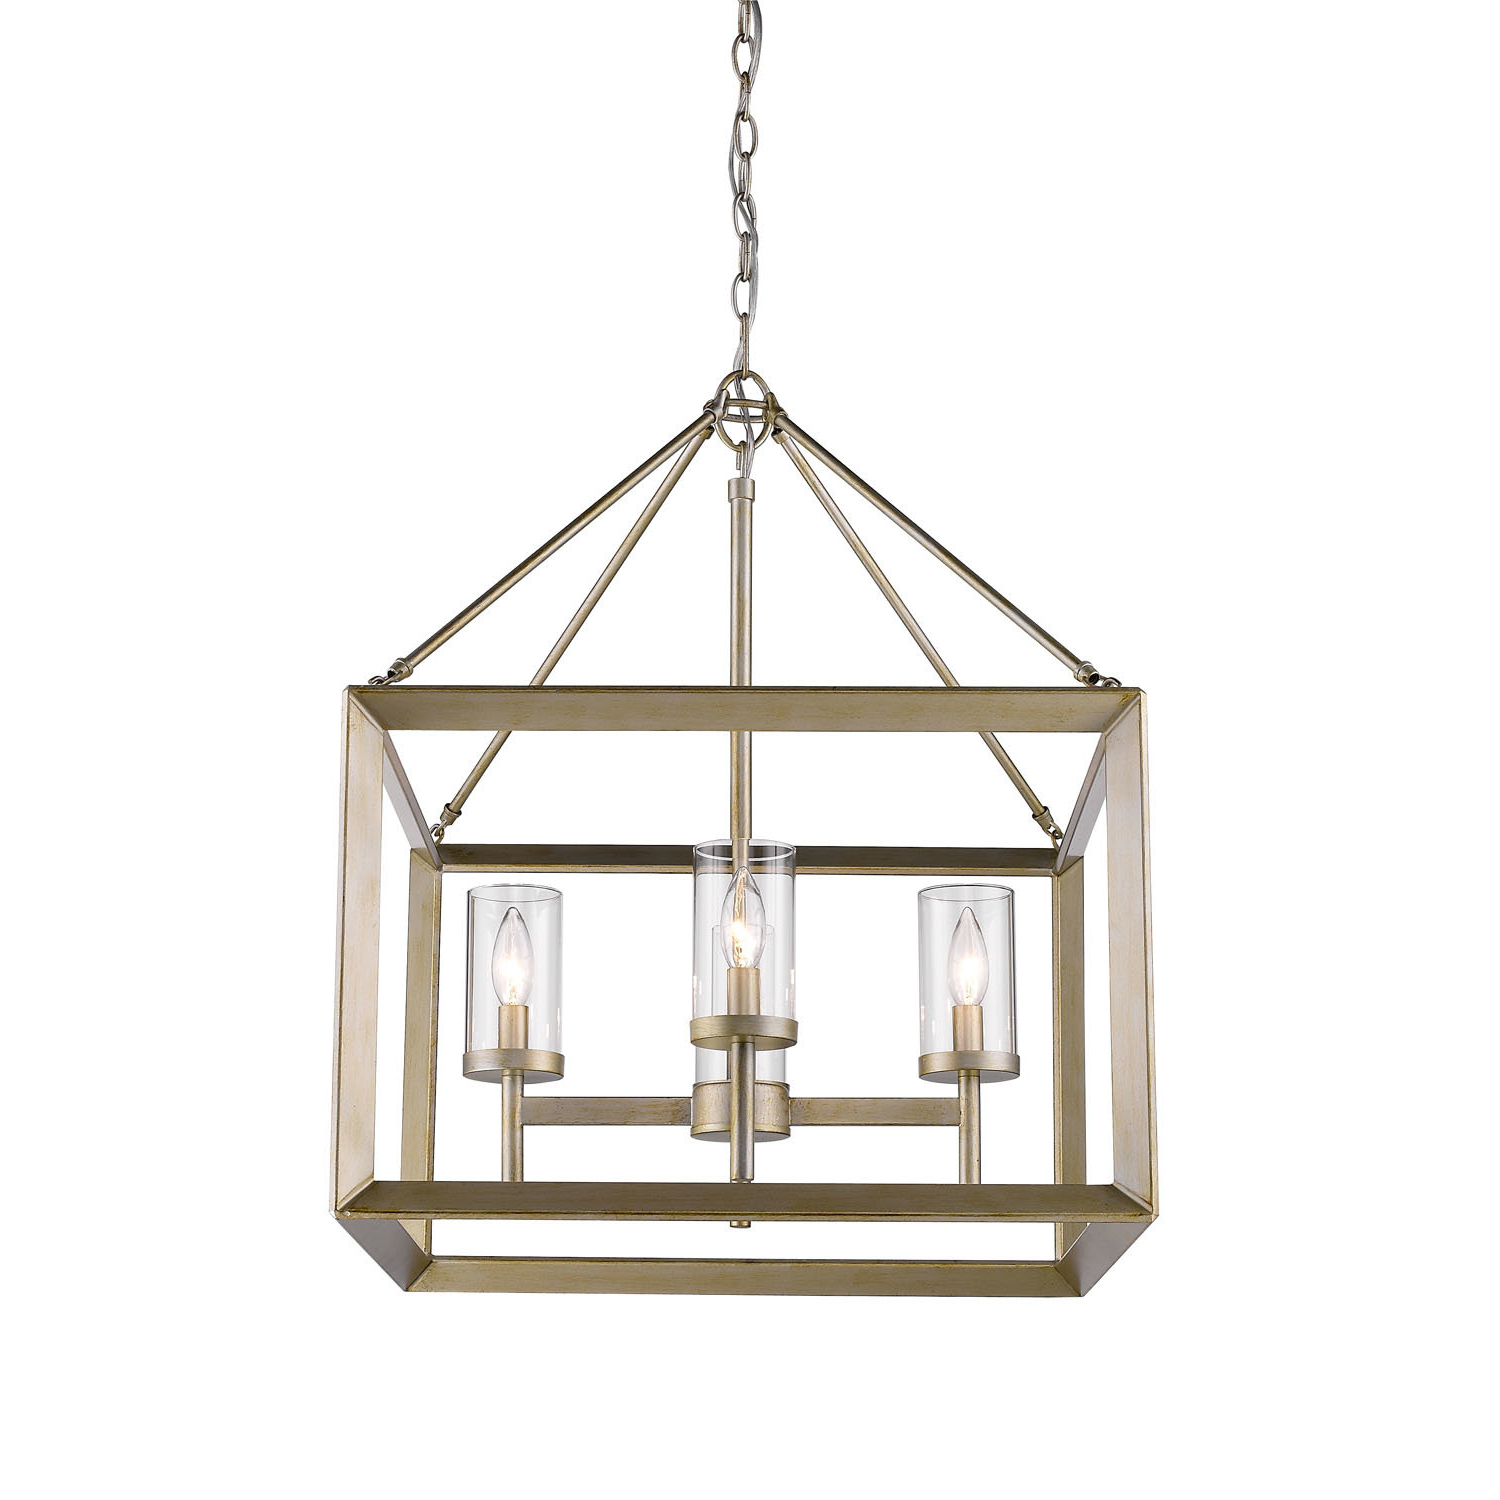 Thorne 4 Light Lantern Rectangle Pendant For Best And Newest Thorne 6 Light Lantern Square / Rectangle Pendants (View 11 of 20)